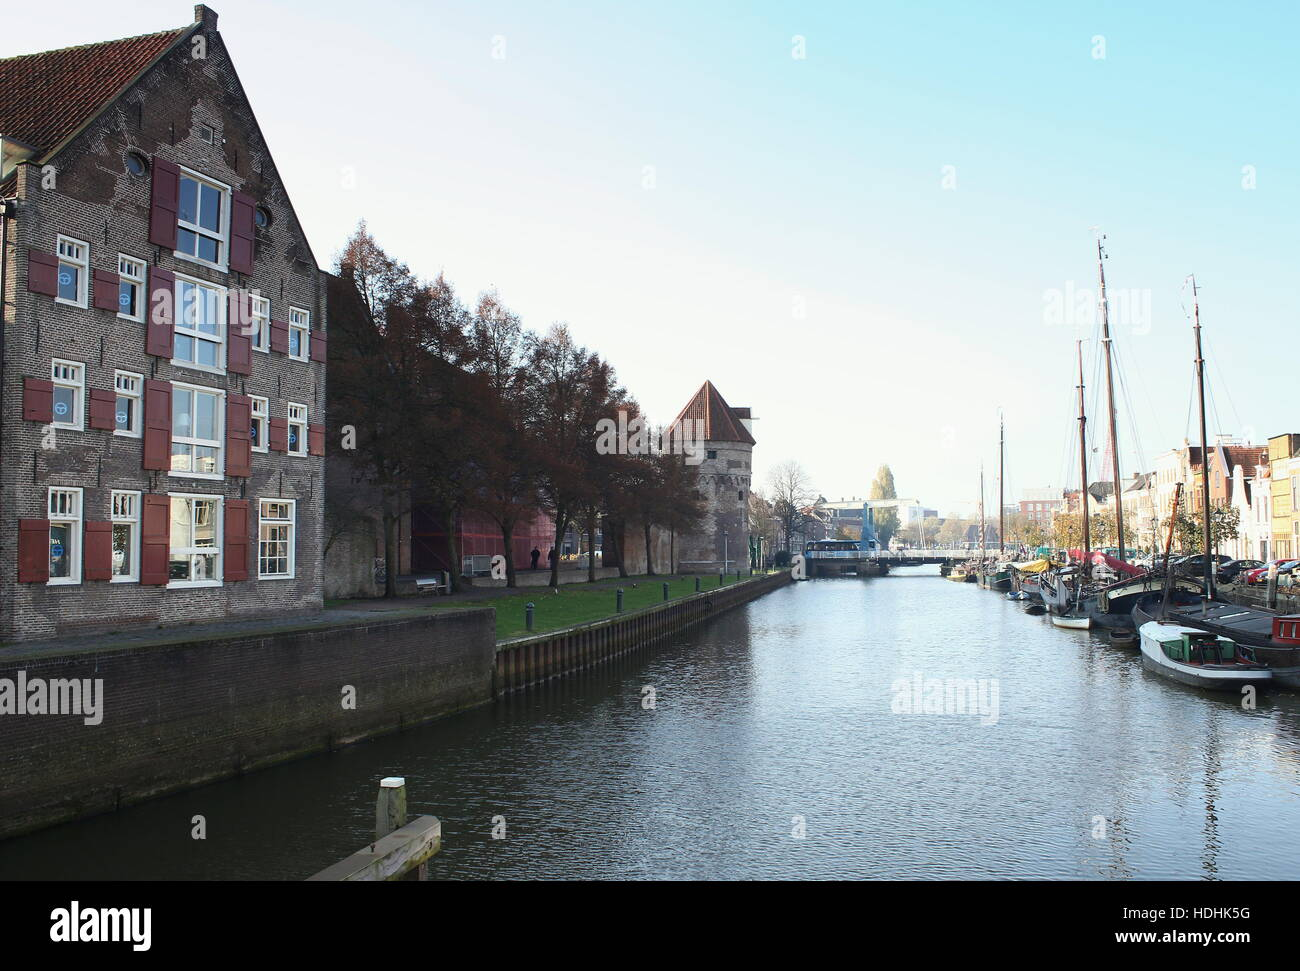 Medieval warehouses at Thorbeckegracht / Thorbecke canal, Zwolle, Netherlands. Ramparts & old city wall with - Stock Image